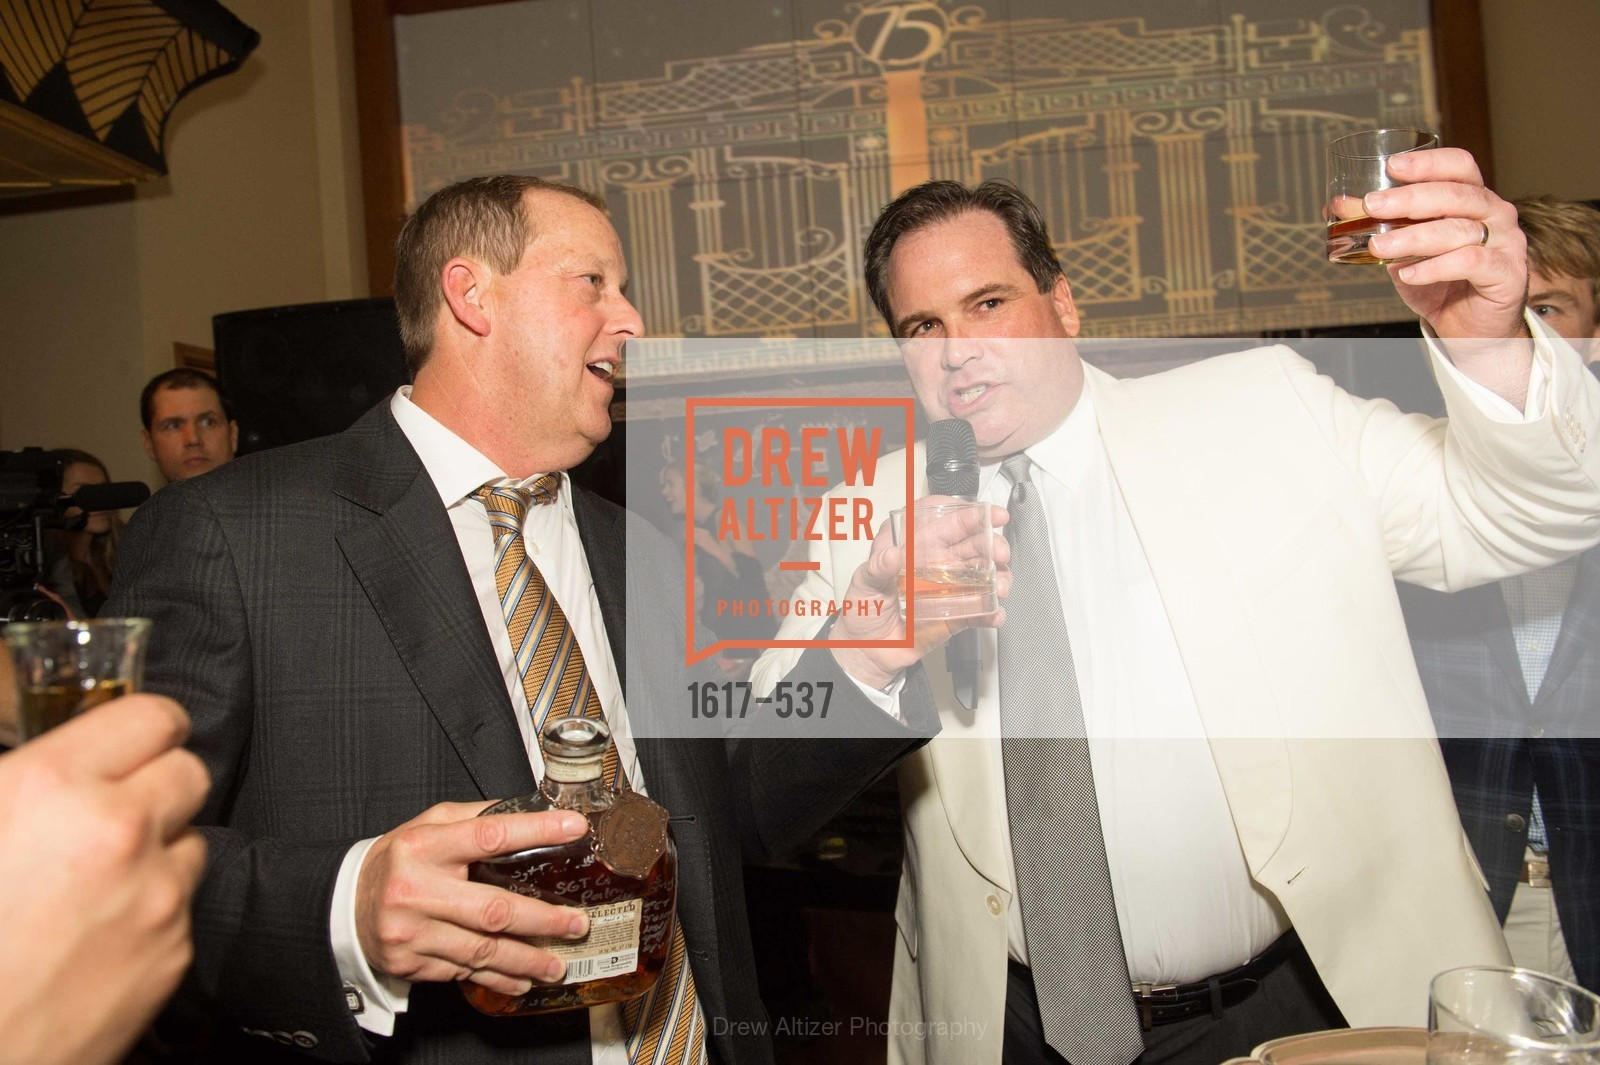 Michael Rosenfeld, John Brady, TOP OF THE MARK'S 75TH Anniversary Party, US, November 7th, 2014,Drew Altizer, Drew Altizer Photography, full-service agency, private events, San Francisco photographer, photographer california